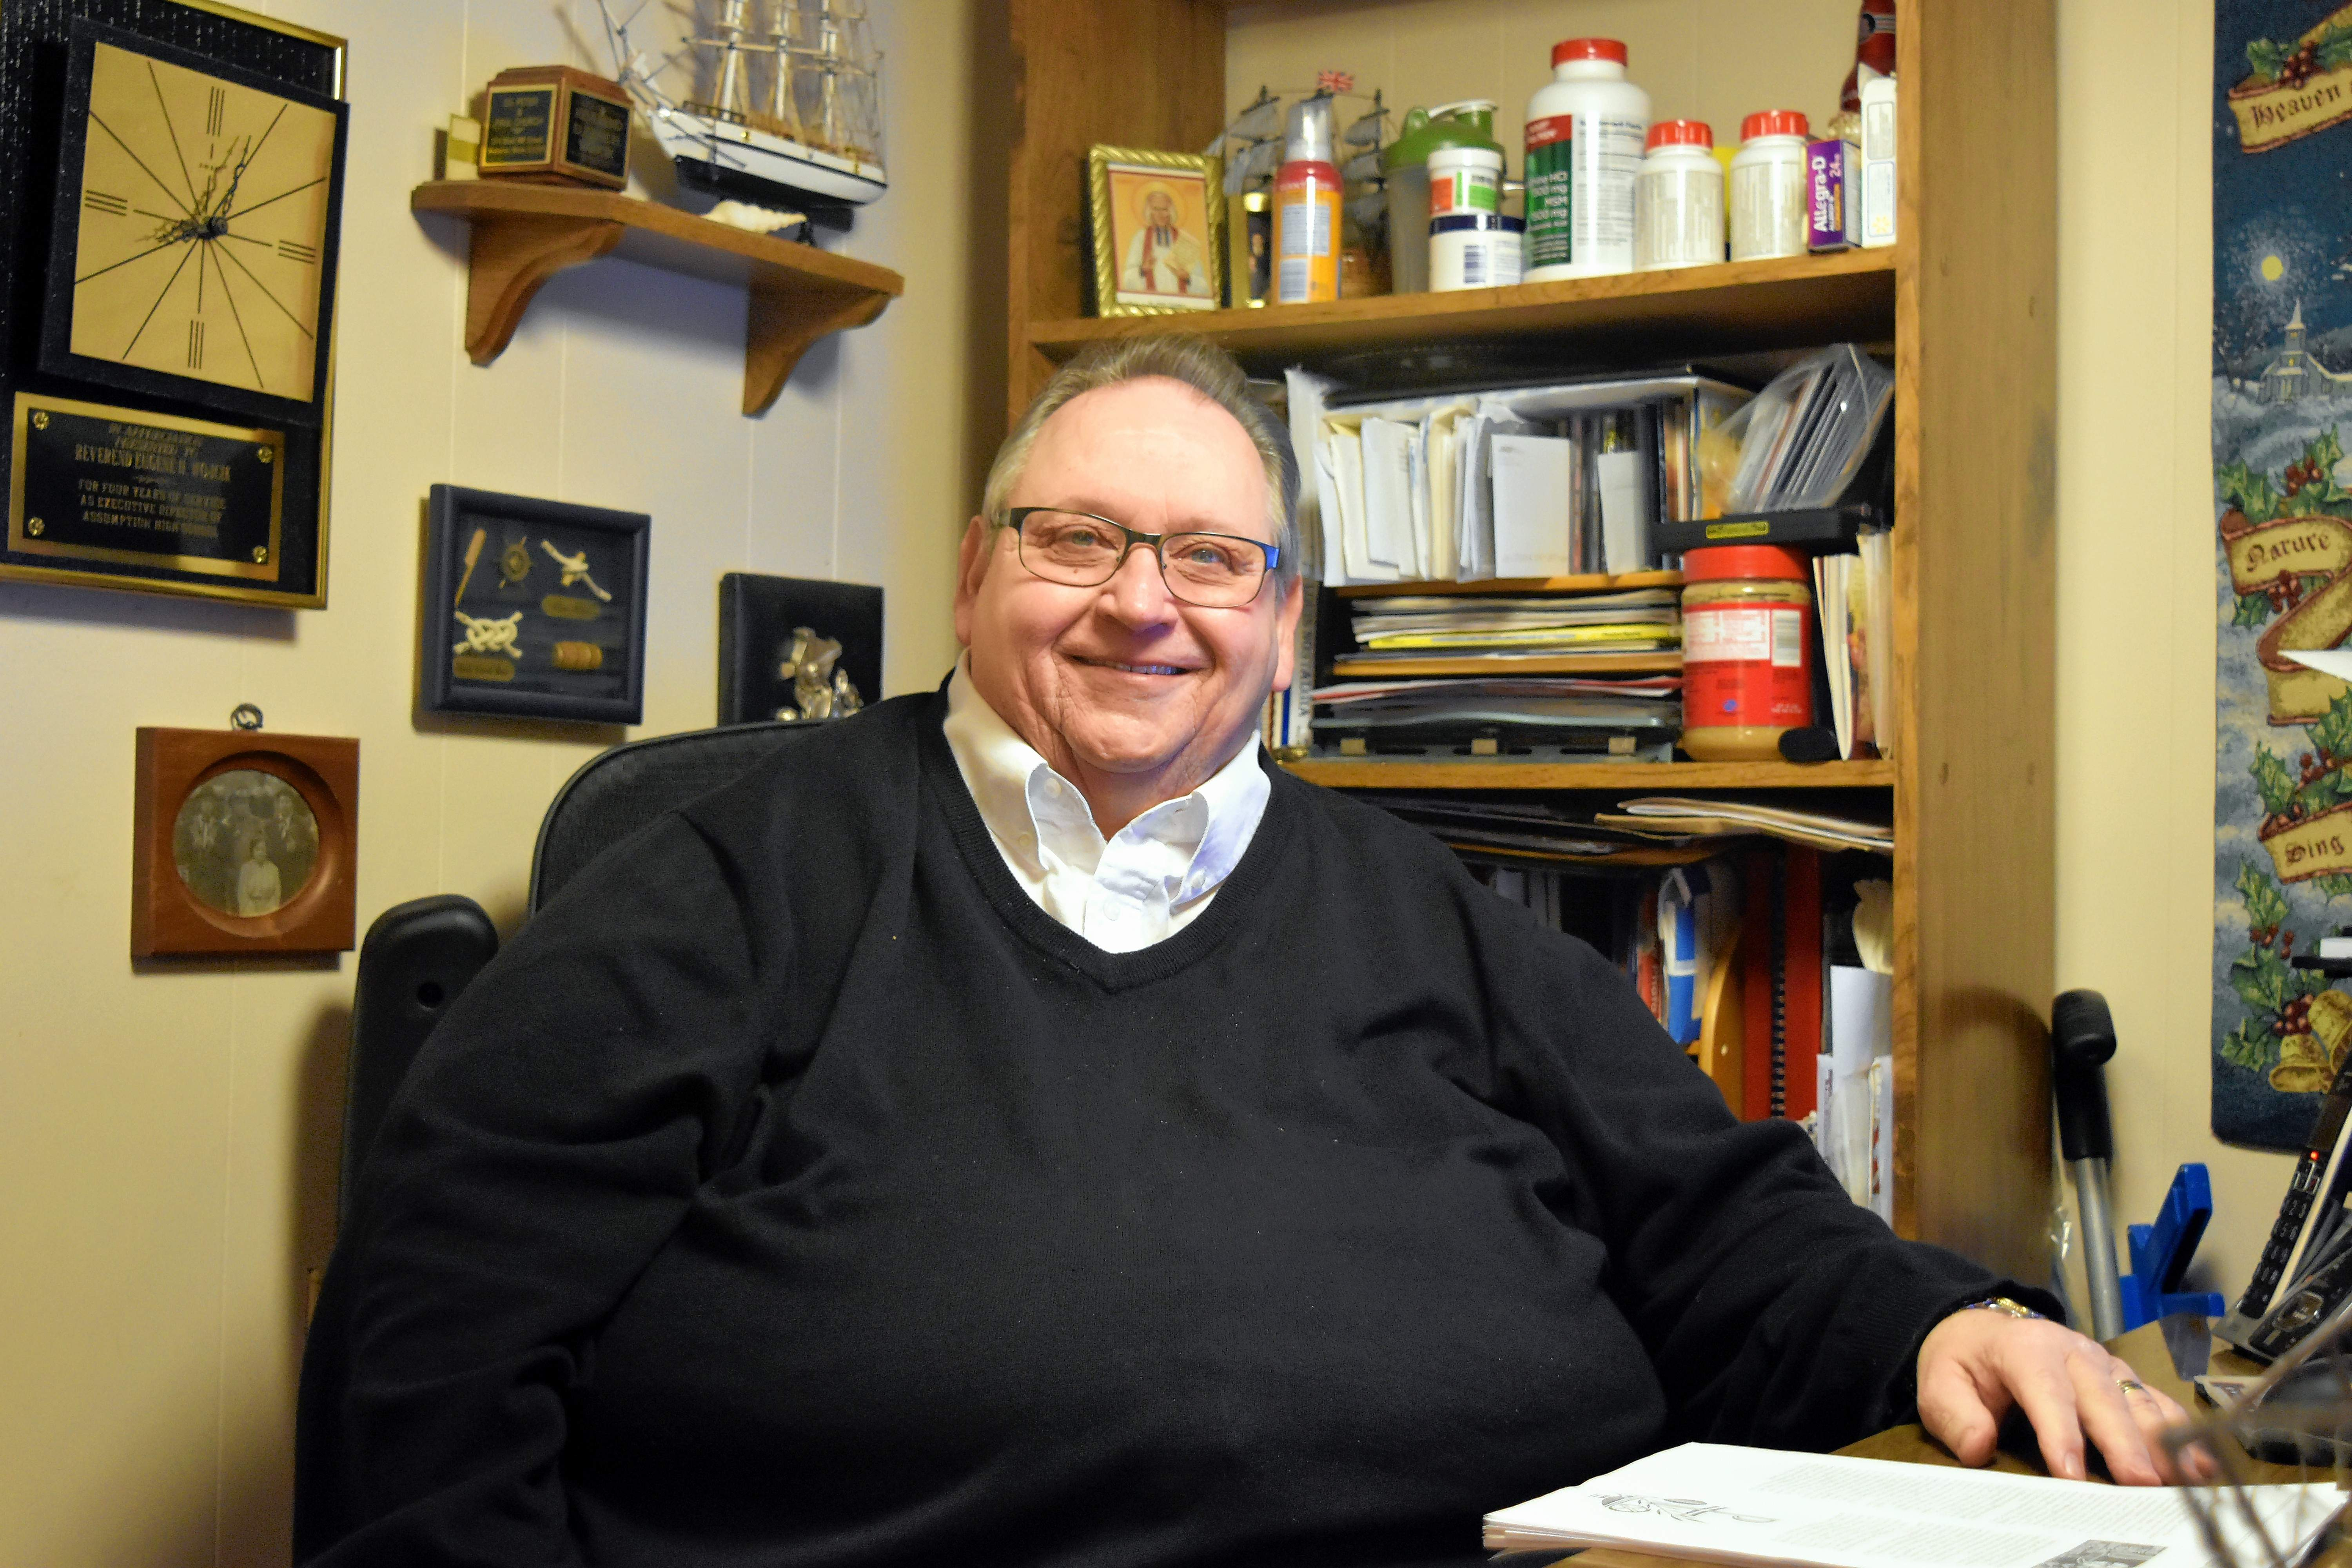 The Very Rev. Eugene Wojcik is pictured inside his home office. He will celebrate the 44th anniversary of his ordination on Jan. 5.